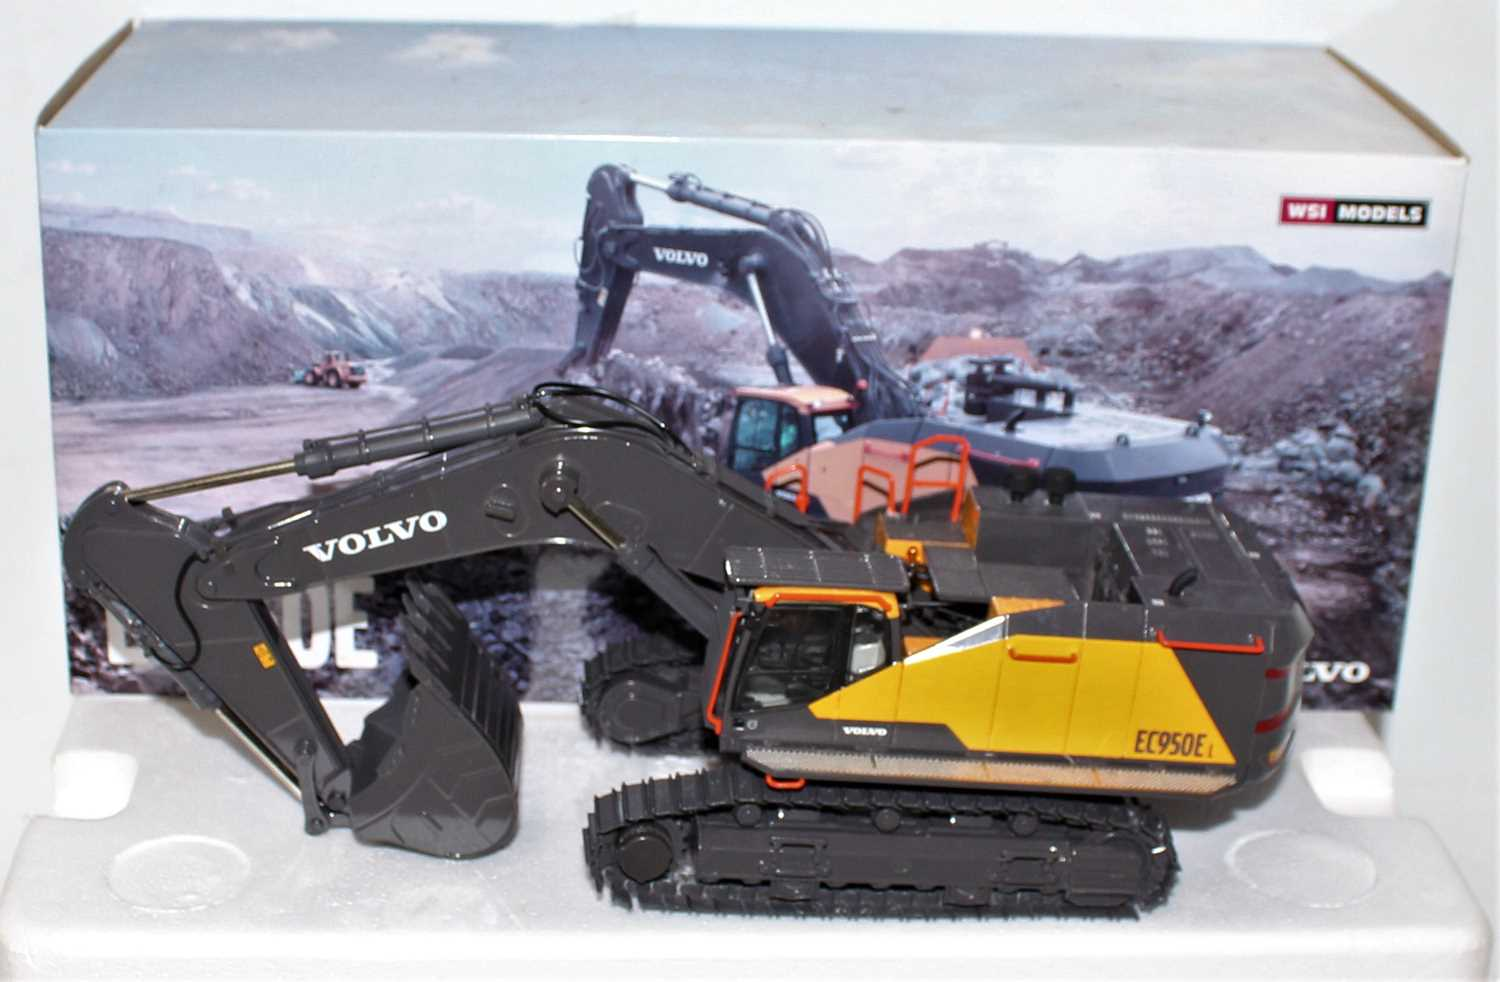 A WSI Models 1/50 scale model No. 61-2001 boxed diecast model of a Volvo EC950E tracked excavator